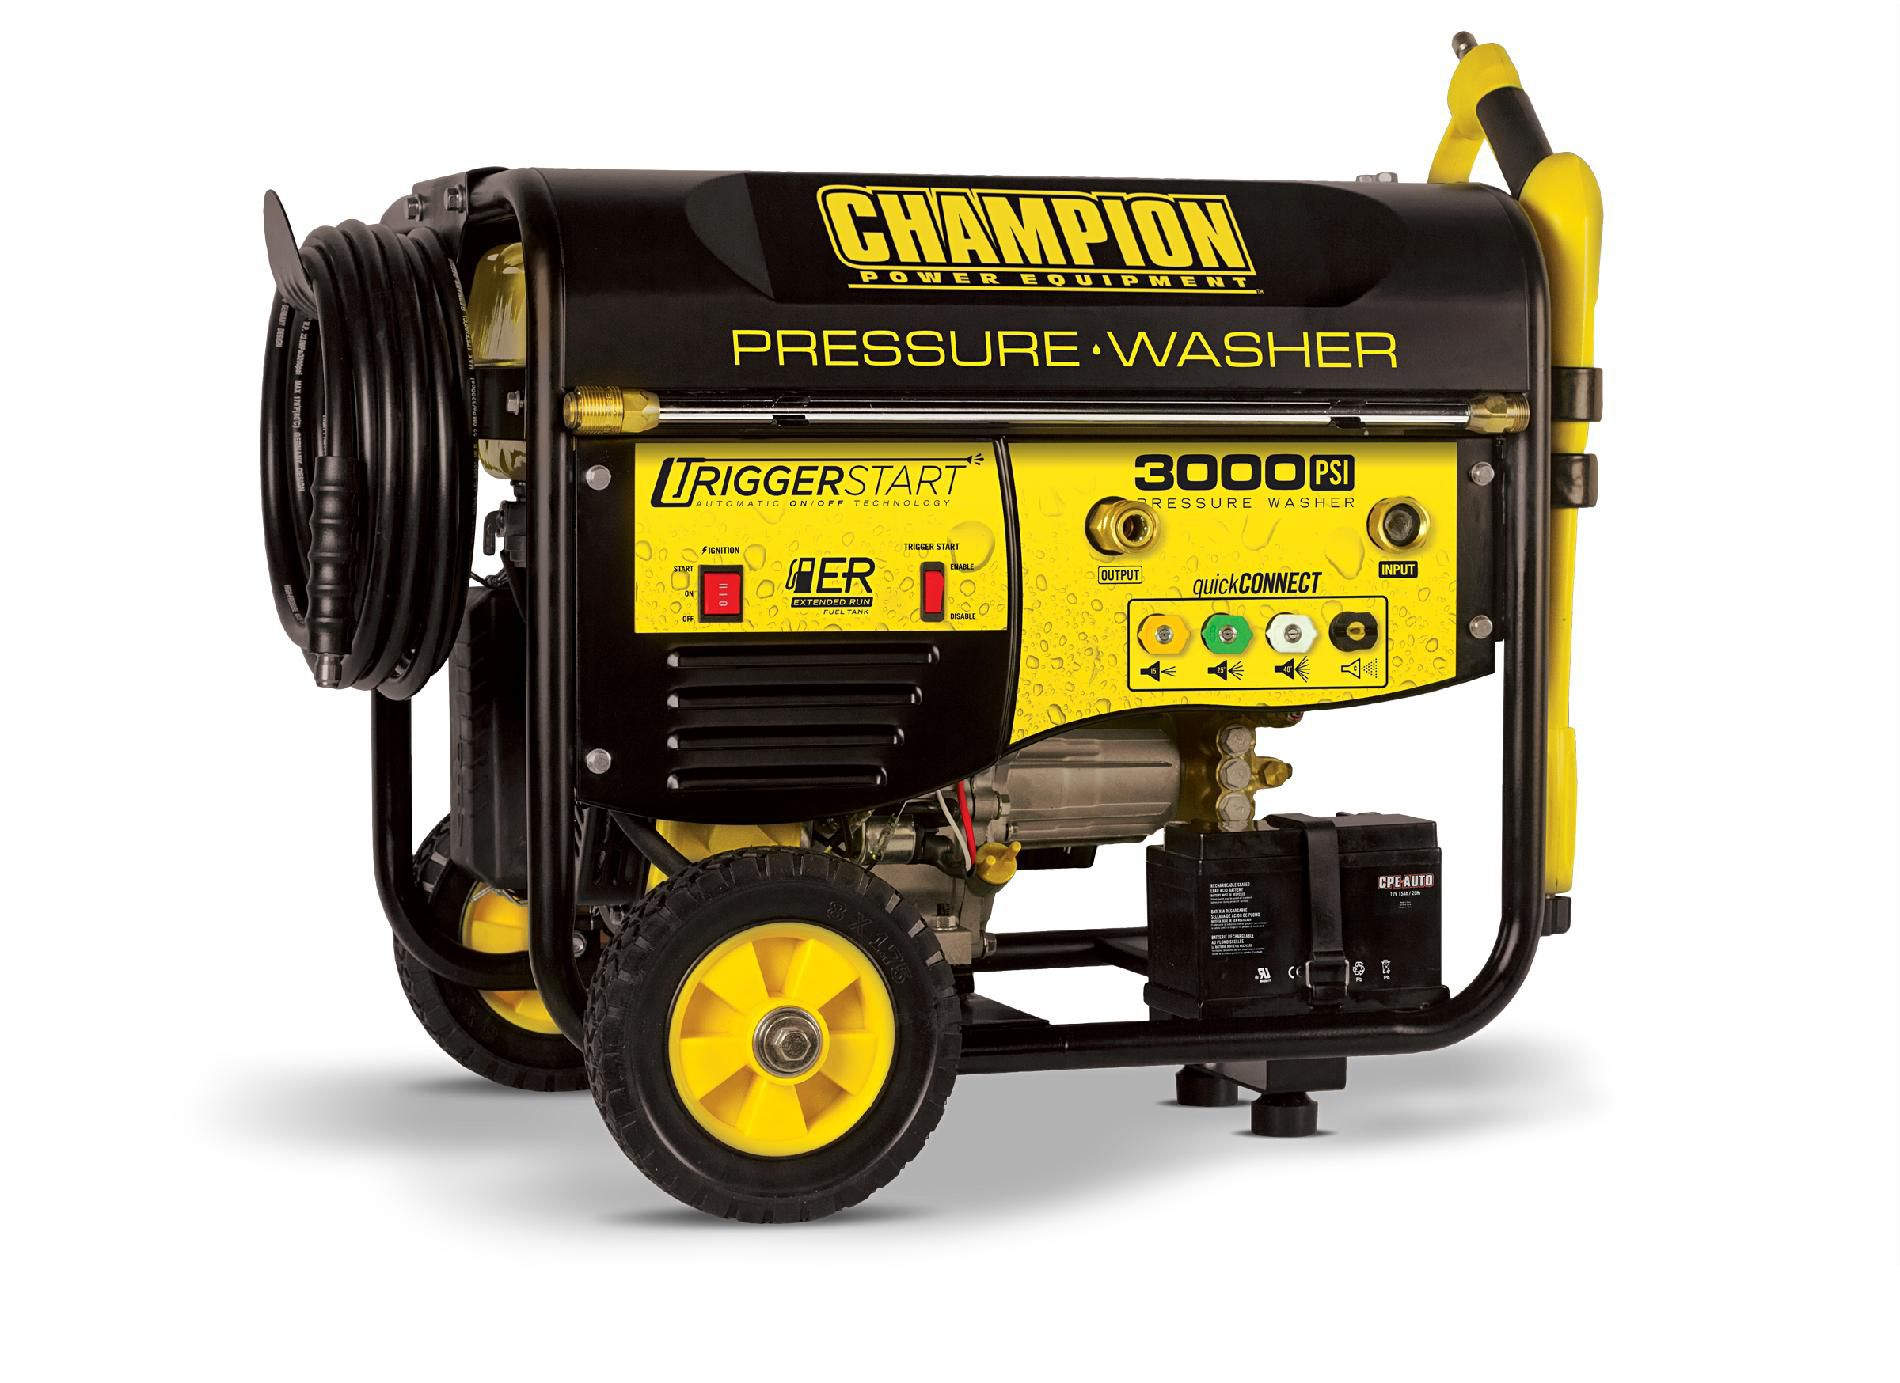 76522 Champion 3000 PSI Trigger Start Portable Pressure Washer CARB